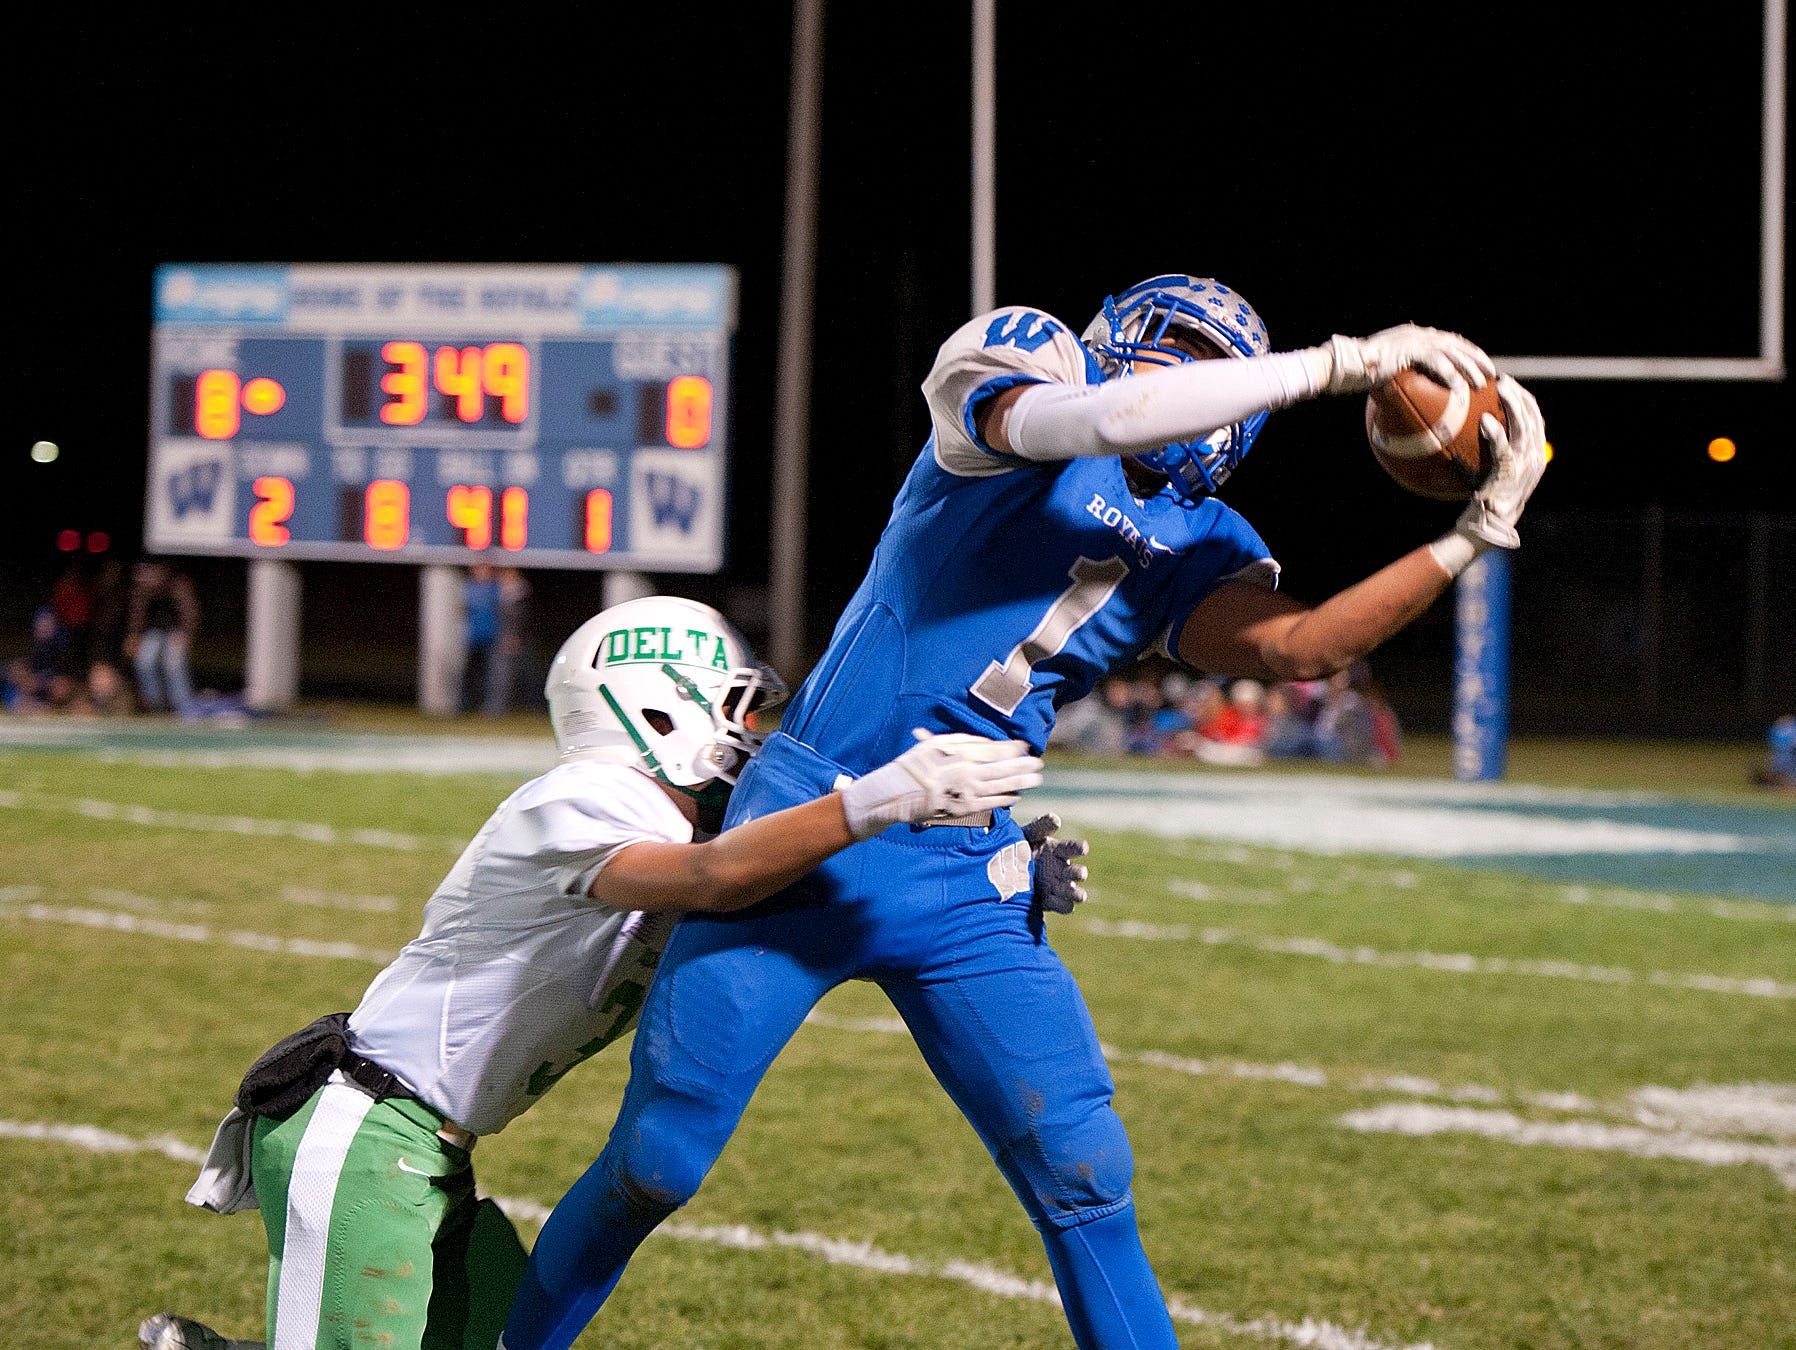 Wynford's Tony Watson catches a pass in the first quarter.